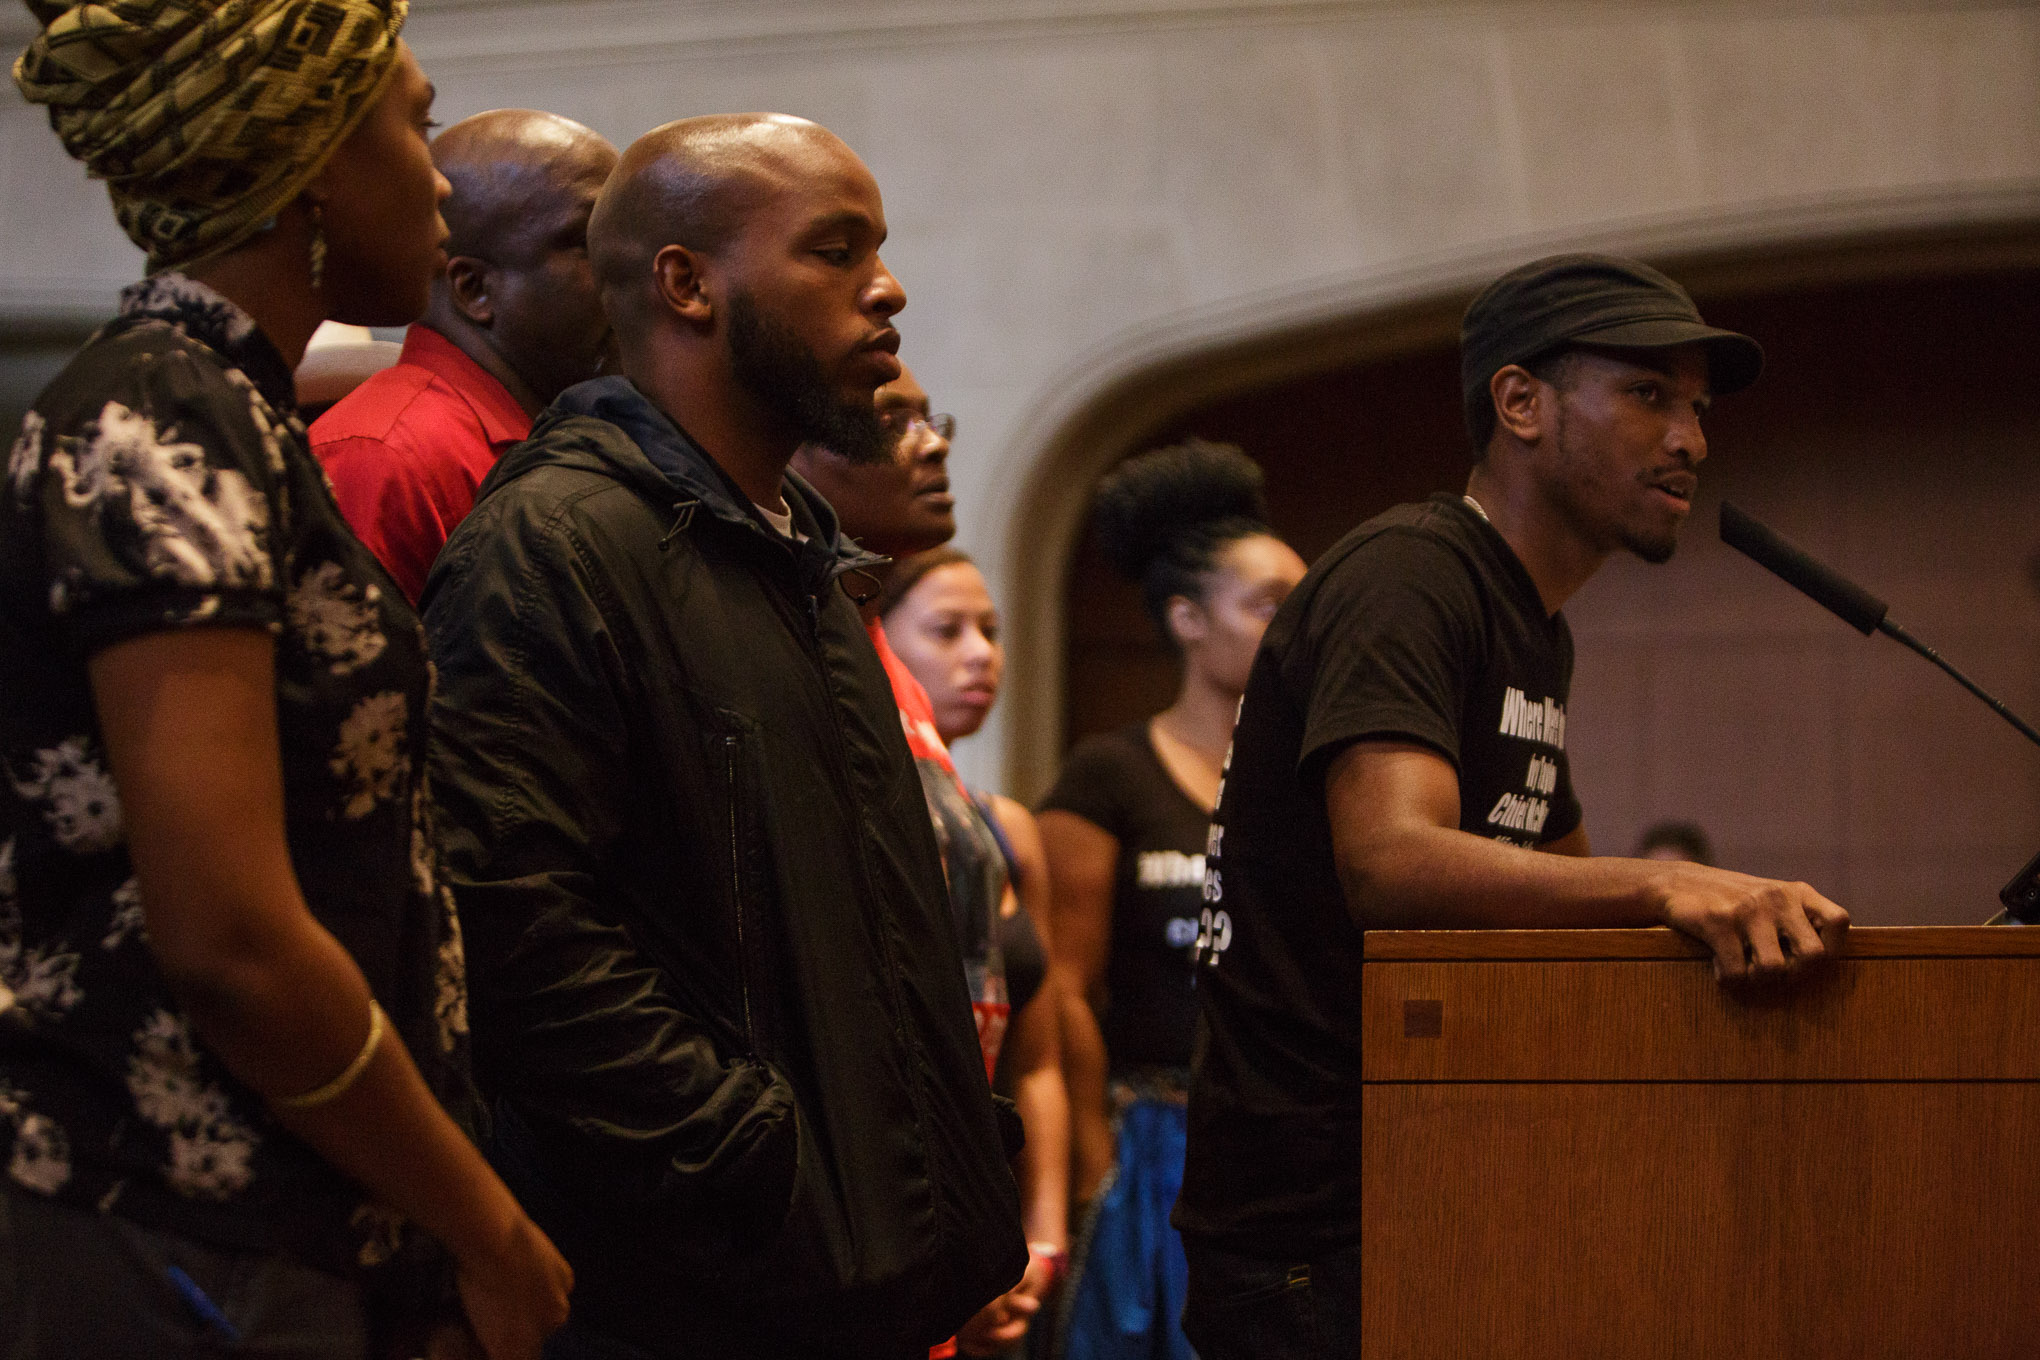 Black Lives Matter organizer and activist Johnathan-David Jones speaks to the Mayor and San Antonio City Council regarding the Police Union contract. Photo by Scott Ball.